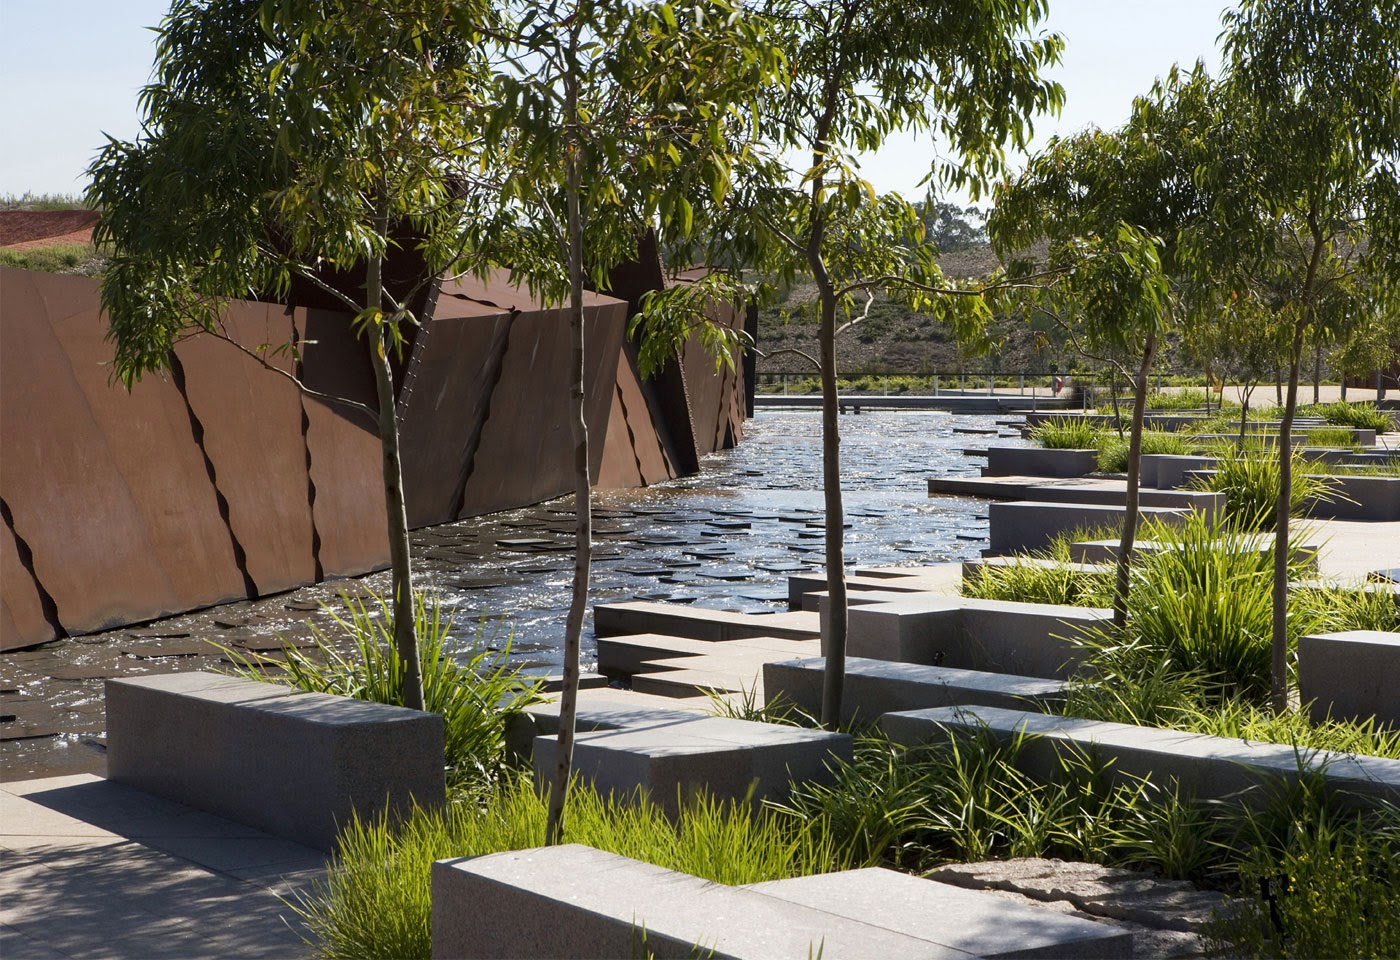 Design australian garden wins landscape of for Garden design australia